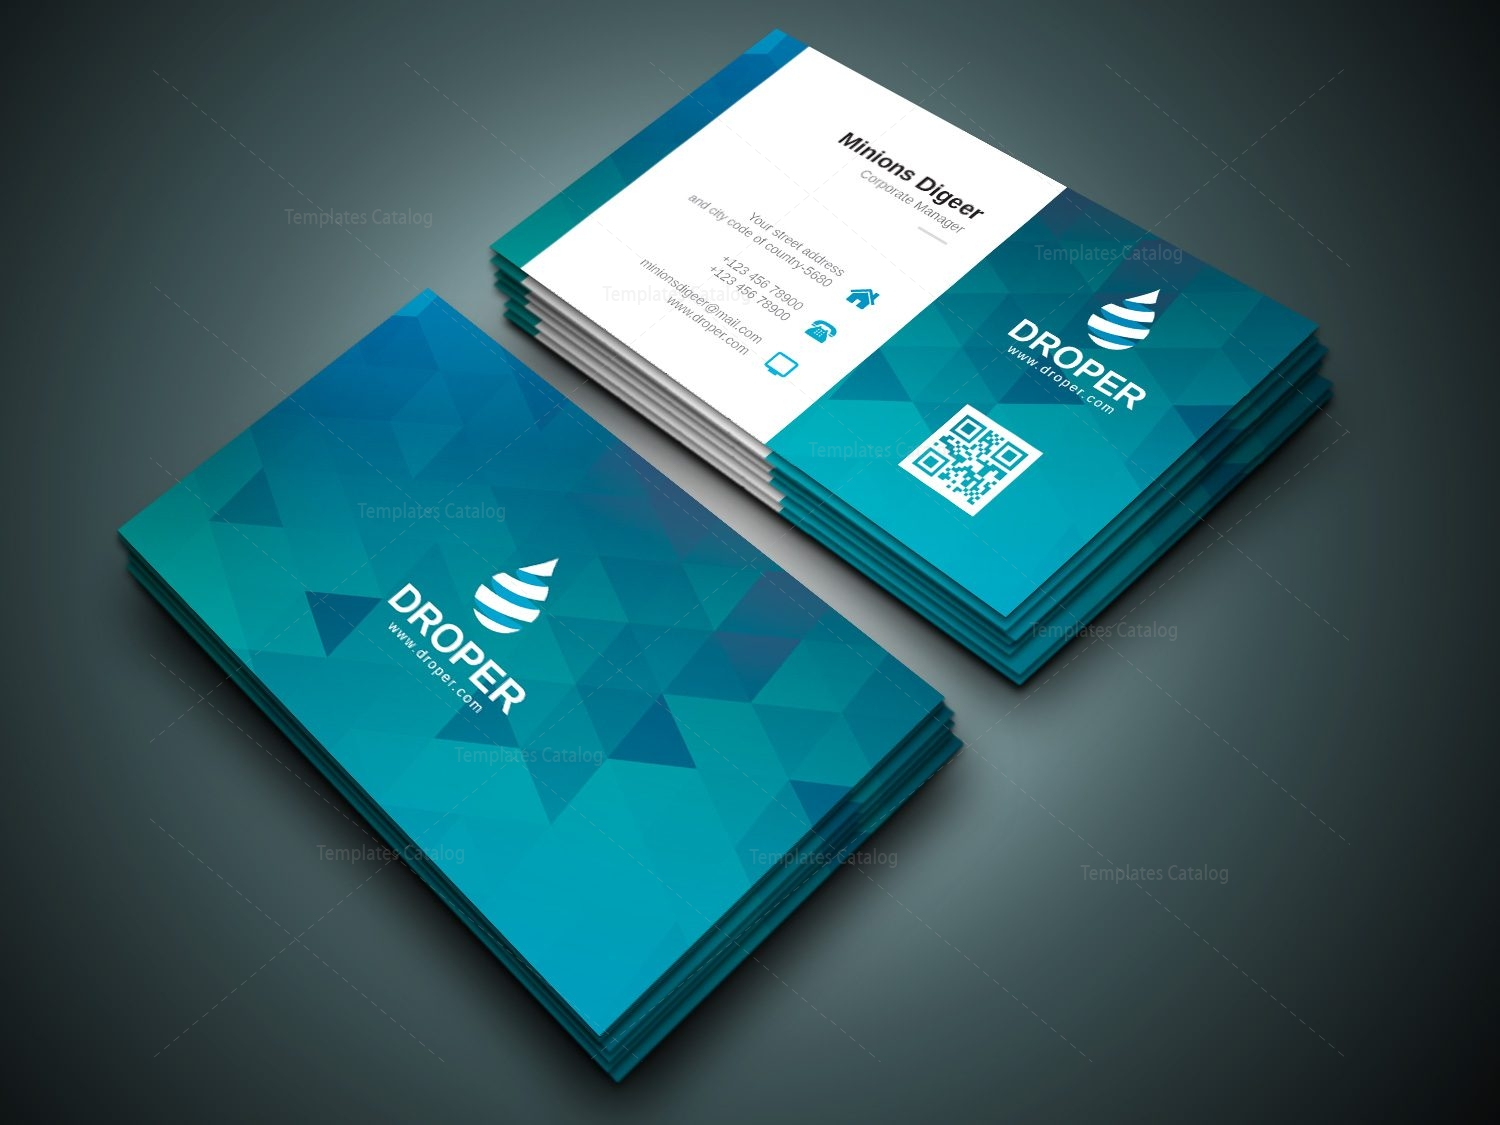 Professional Business Cards Templates Image collections - Business ...